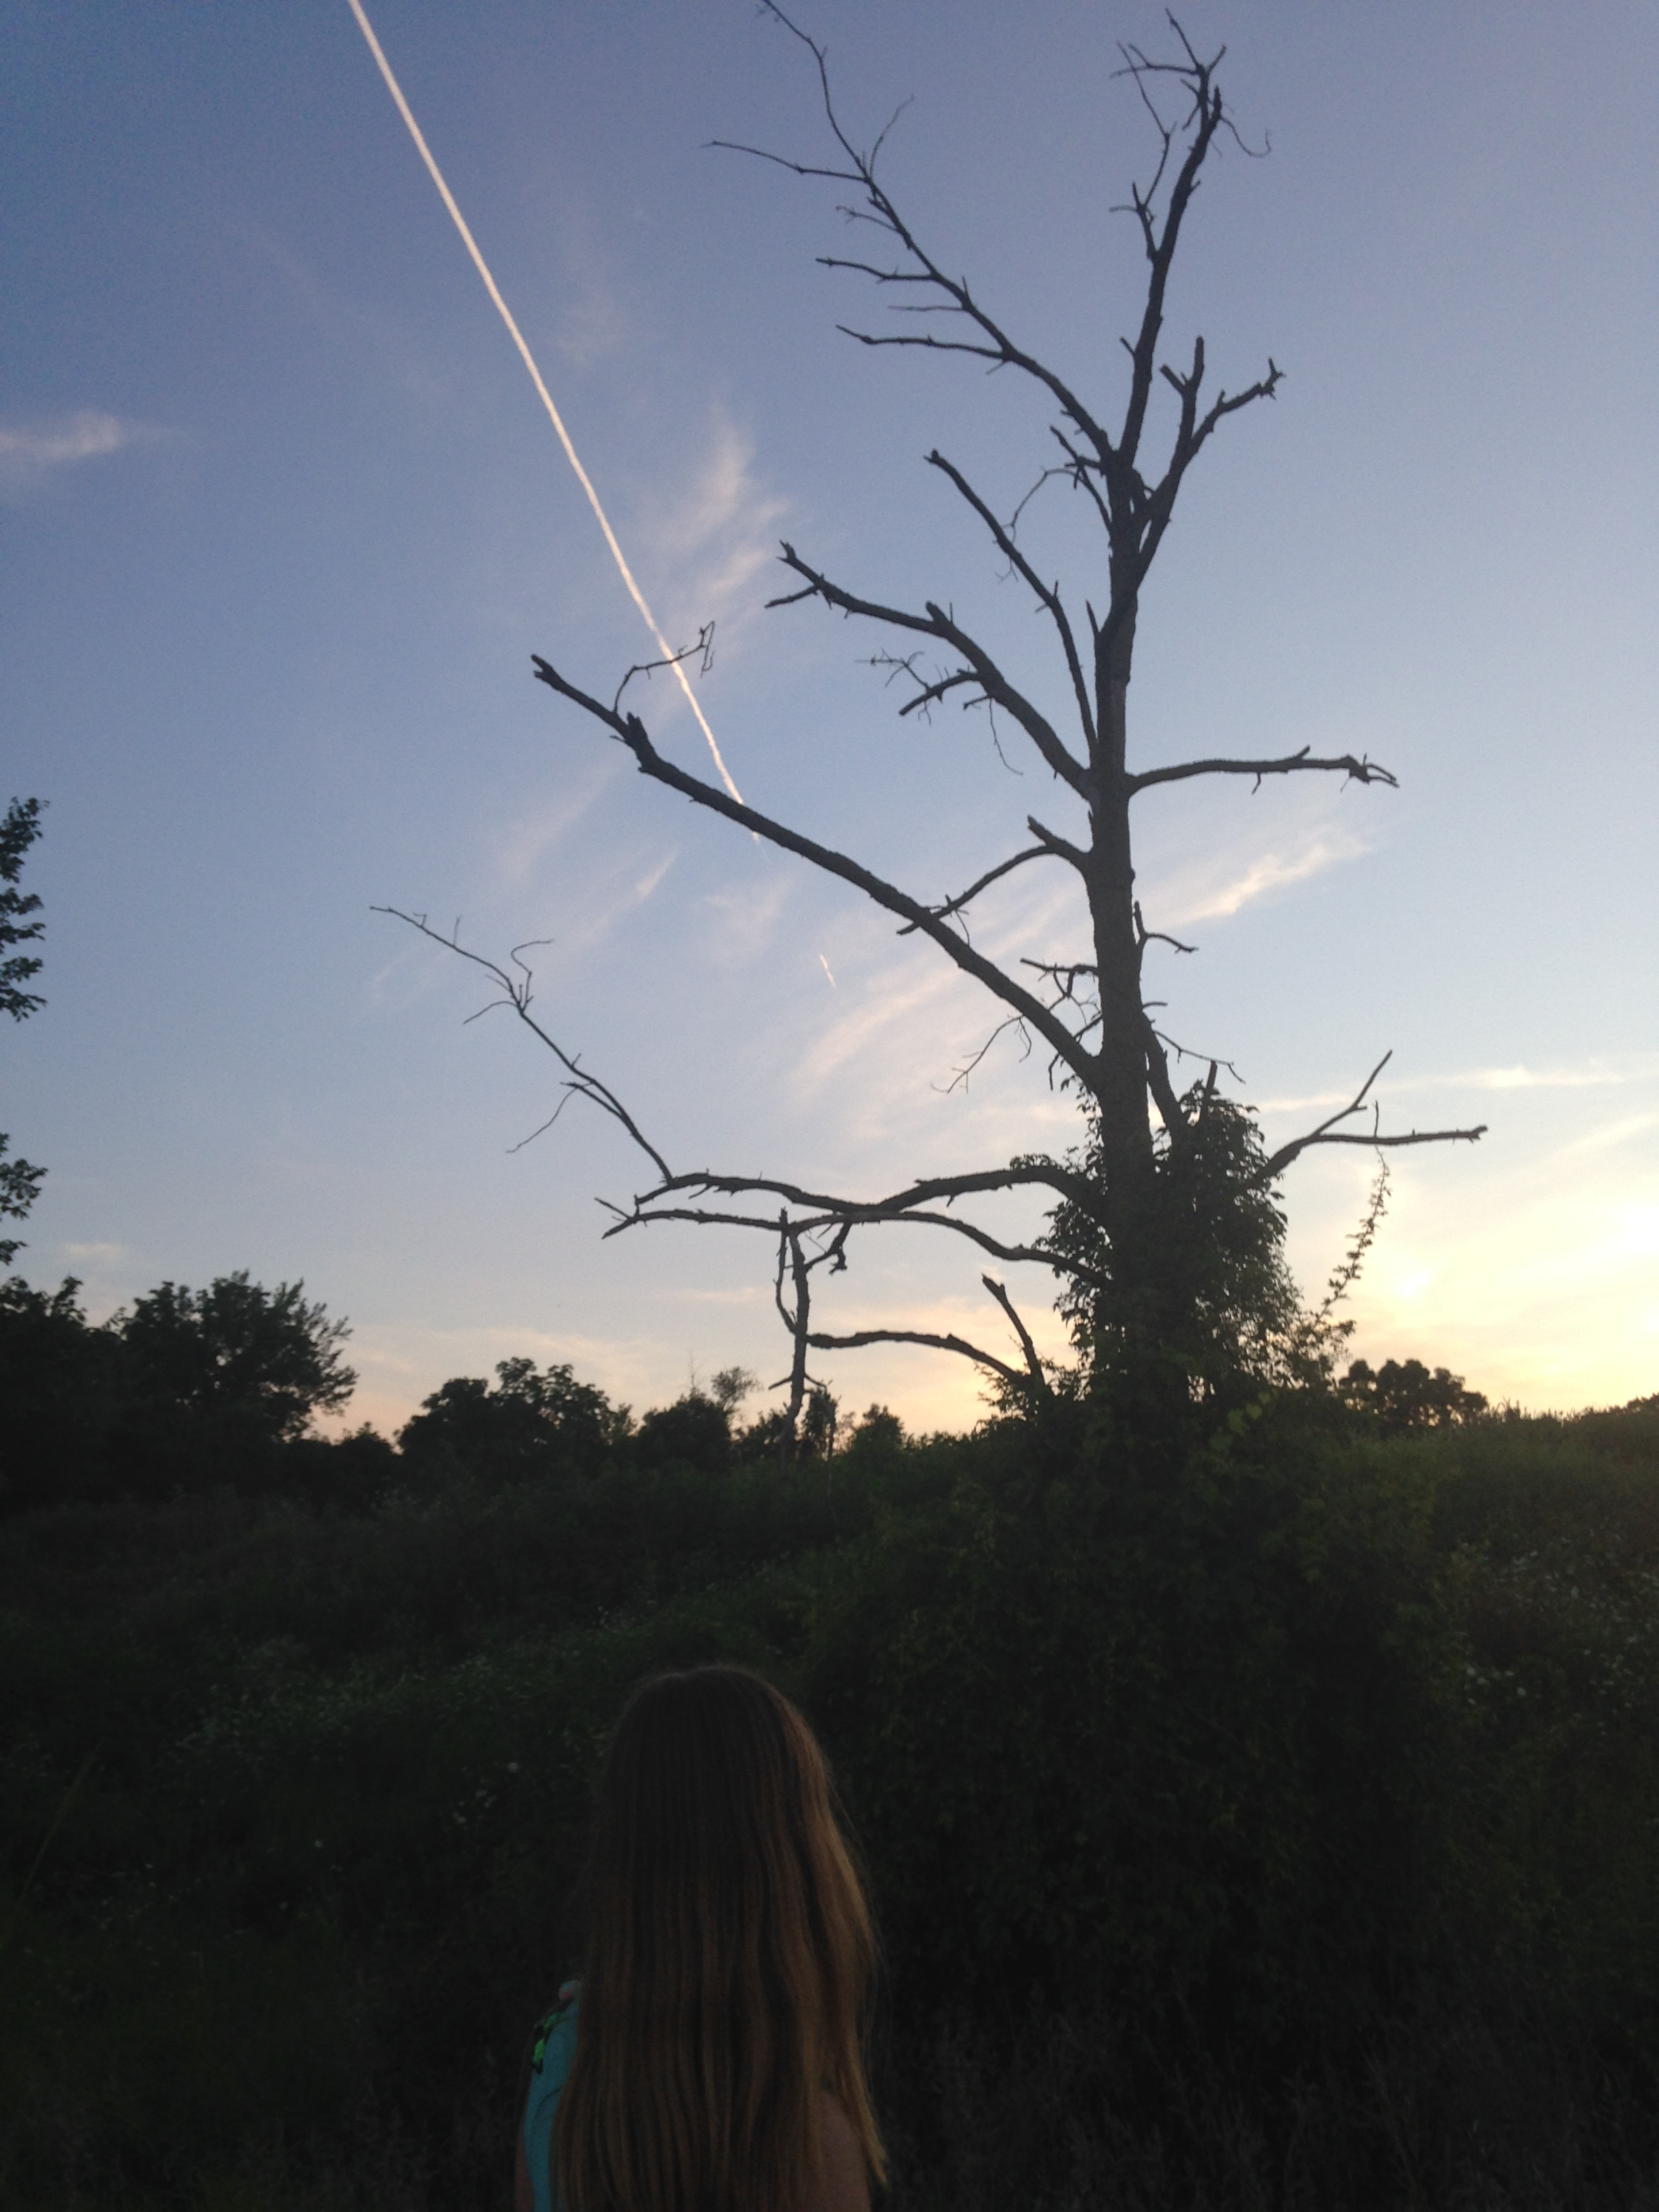 Ashlee-Looking-at-Dead-Tree-and-Sky.jpg